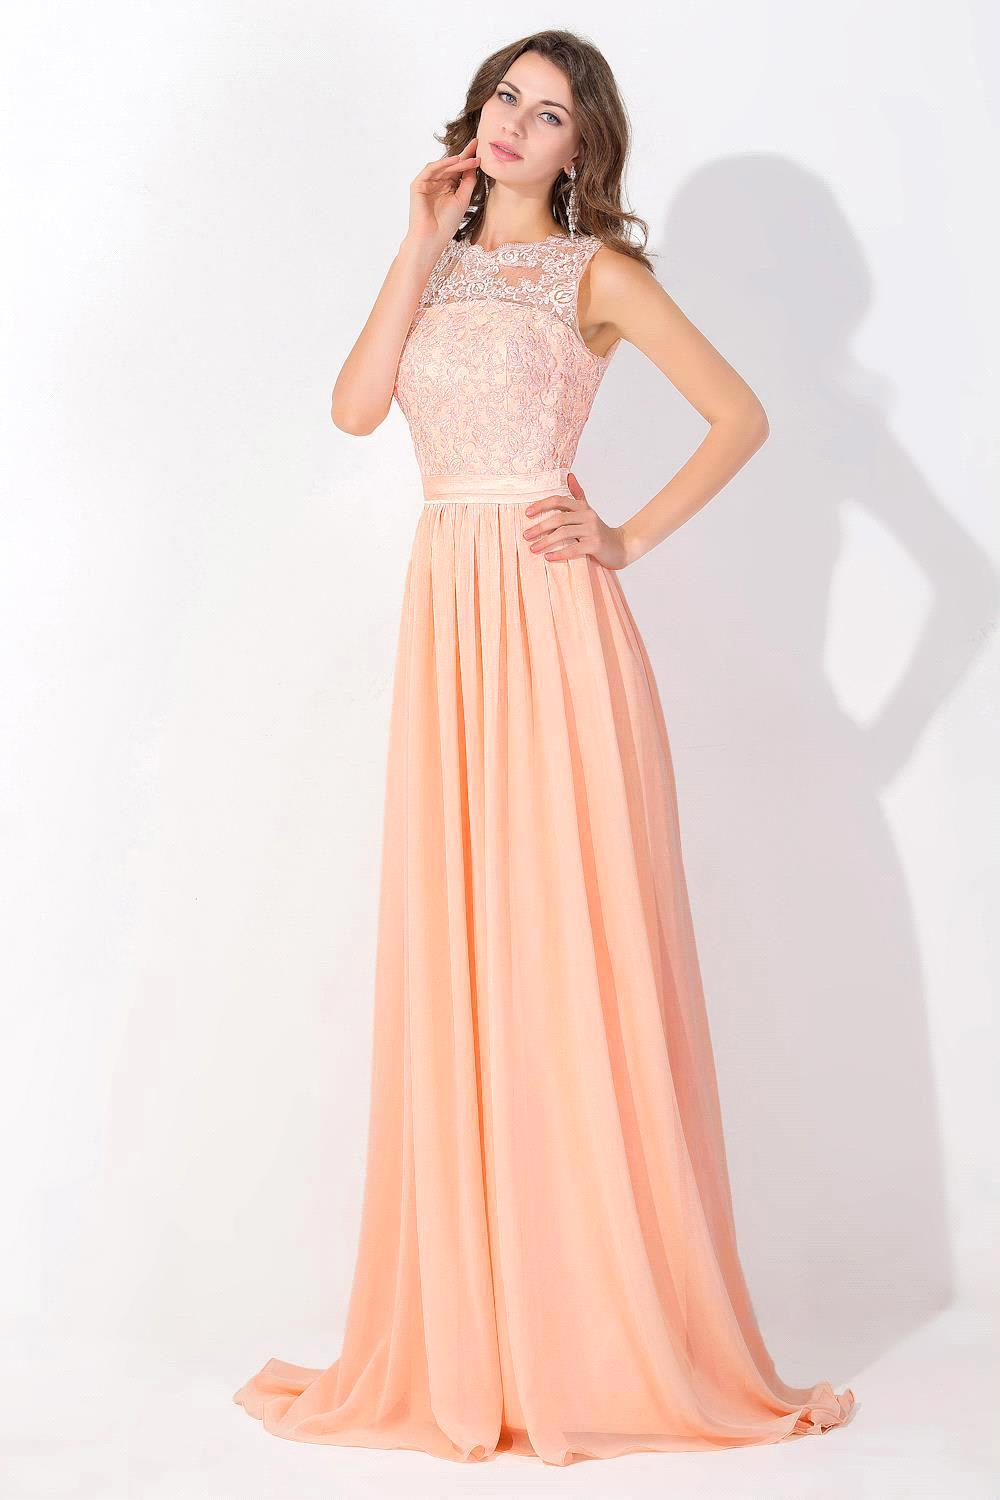 com : Buy Real Coral Long Lace Prom Dresses Sexy Sheer Tulle Open ...